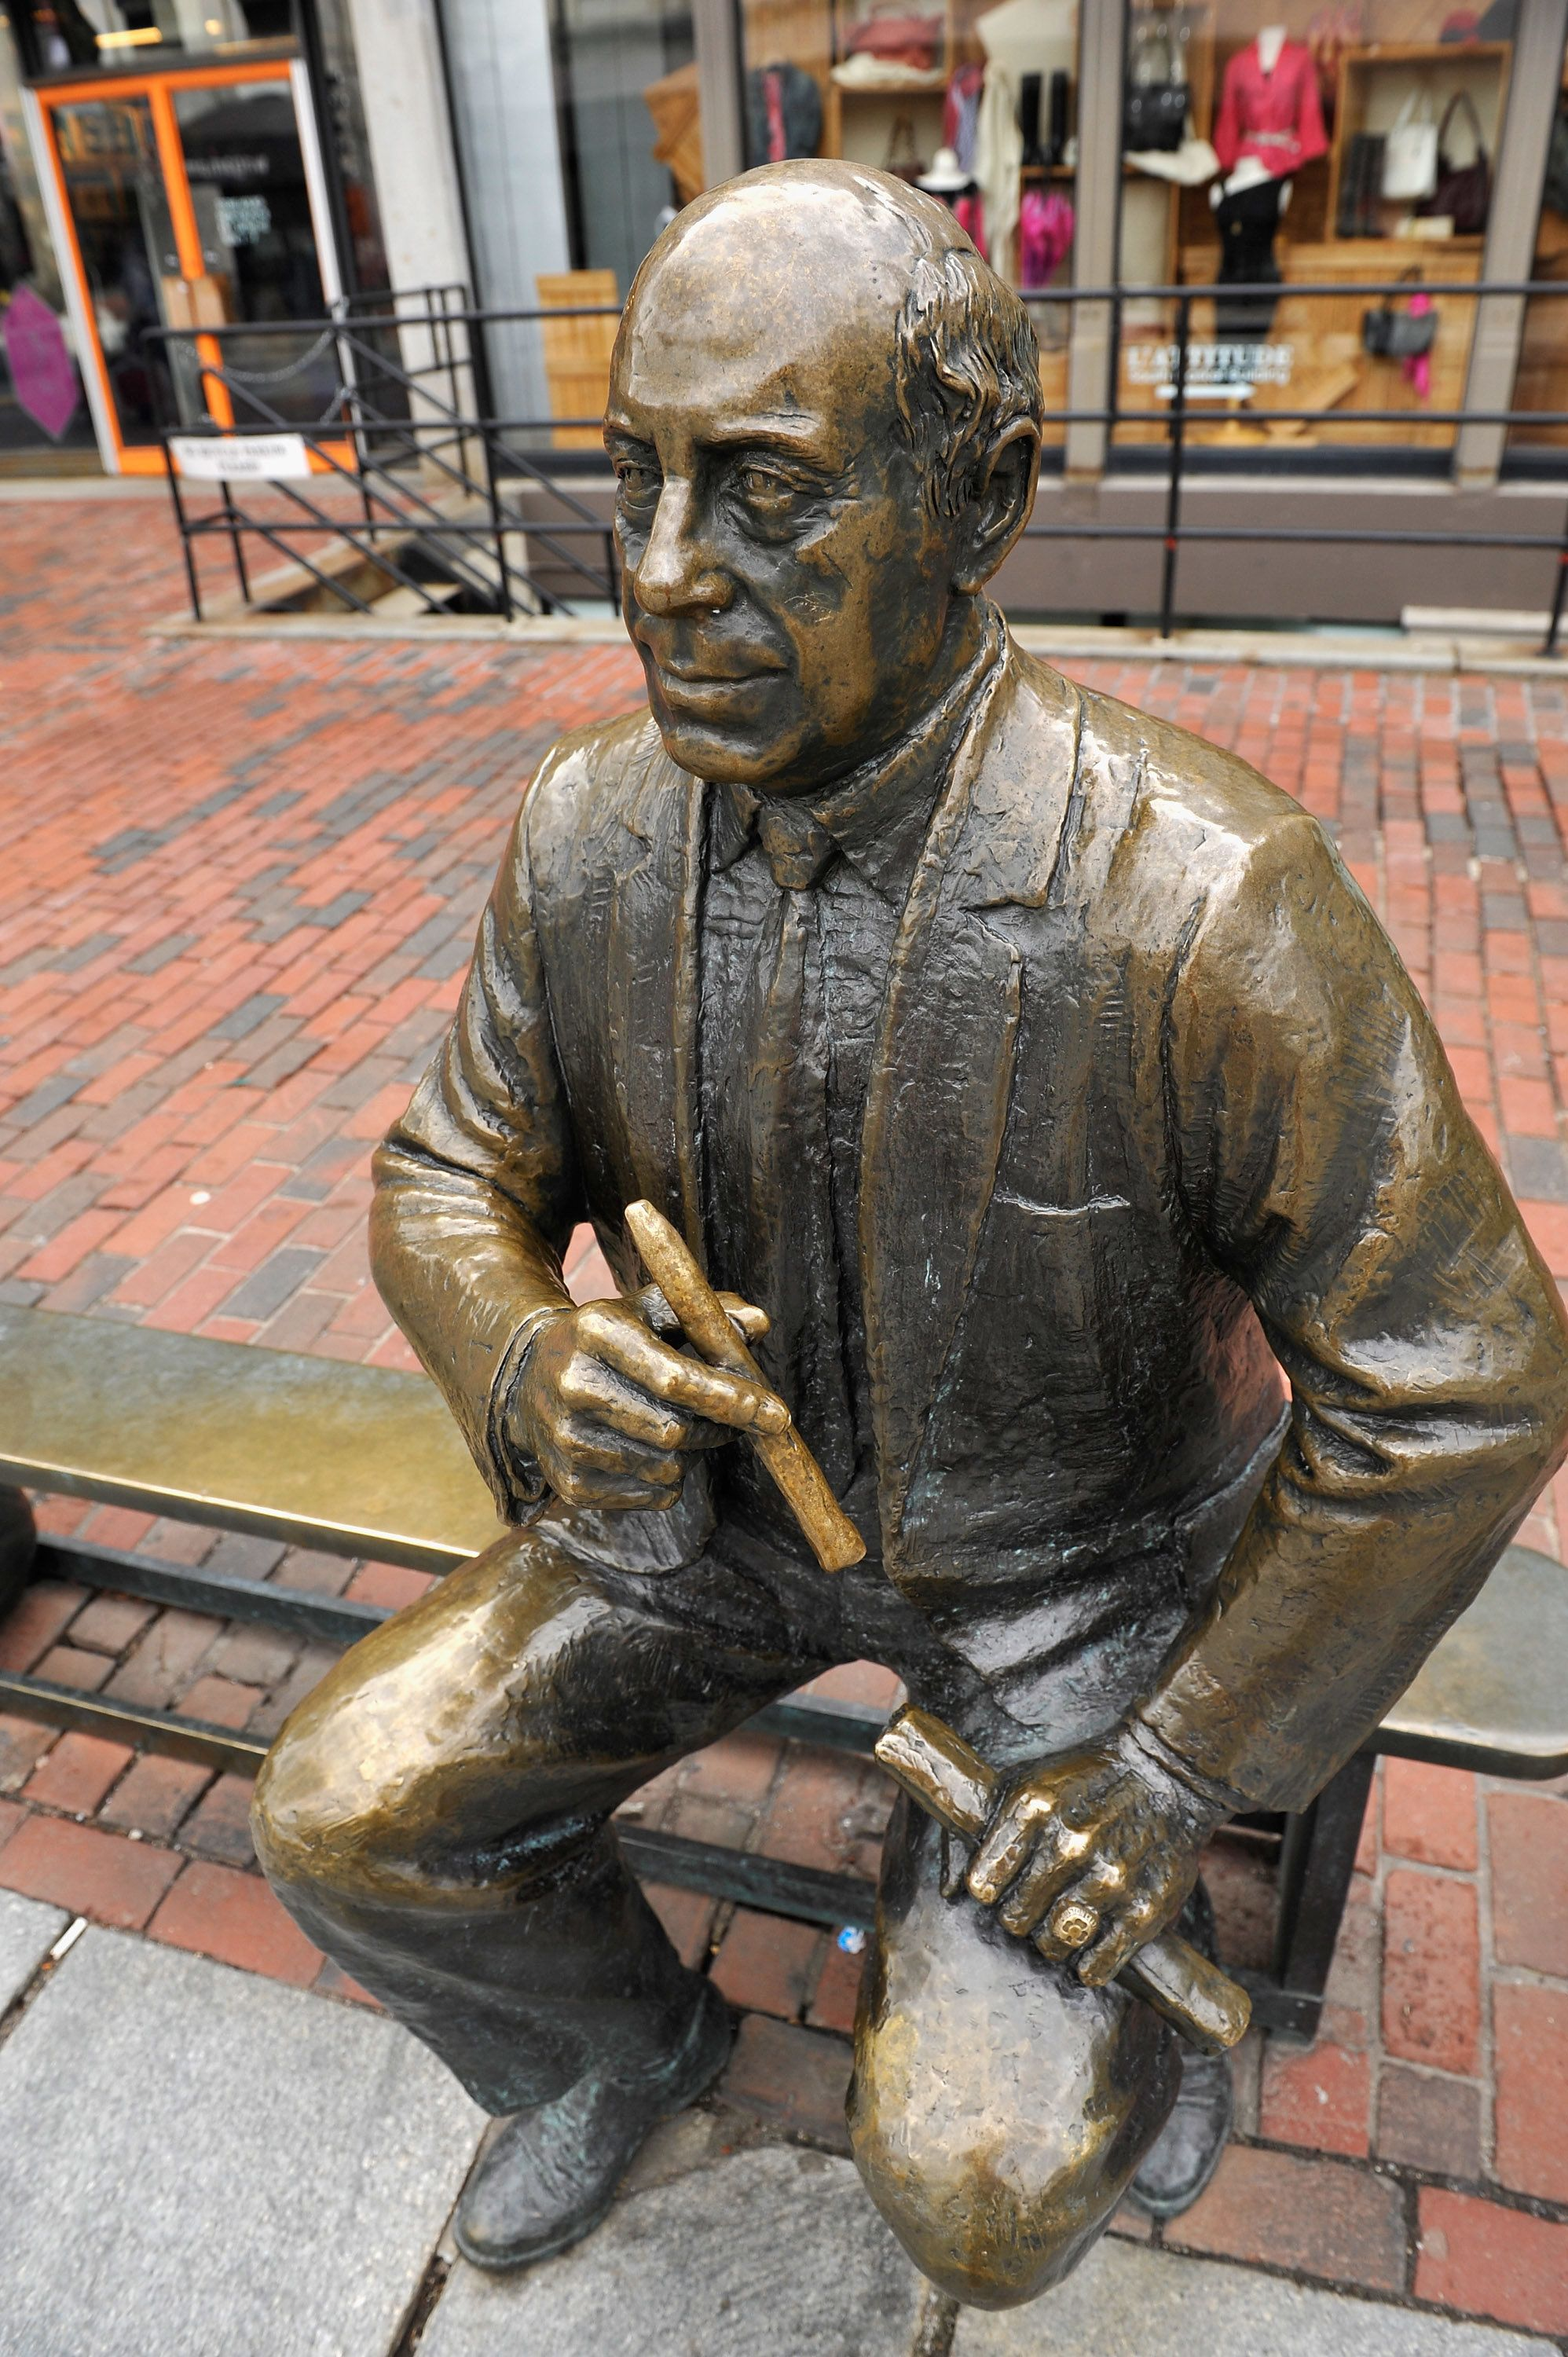 The Boston PD's Tweet honored former Boston Celtics coach and president Red Auerbach, whose statue is seen in the city's